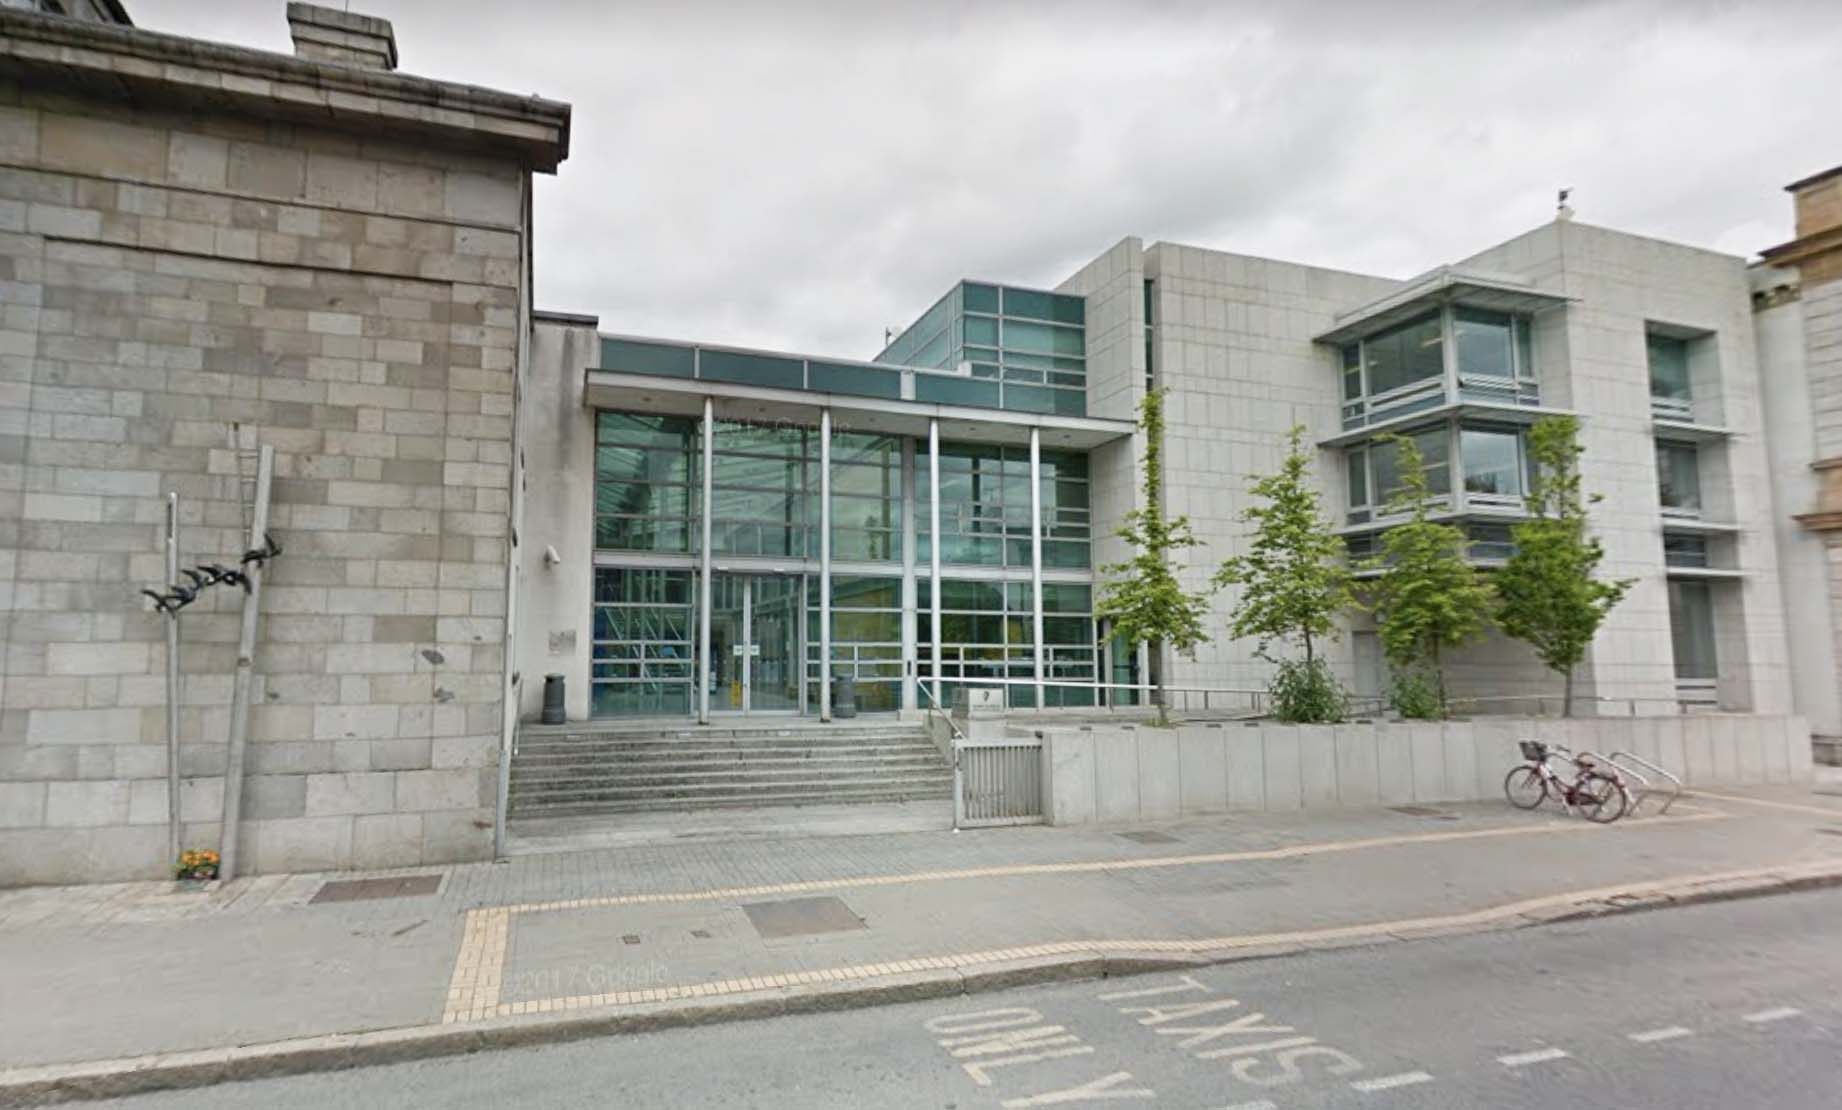 18-year-old boy charged with murder in Co. Louth